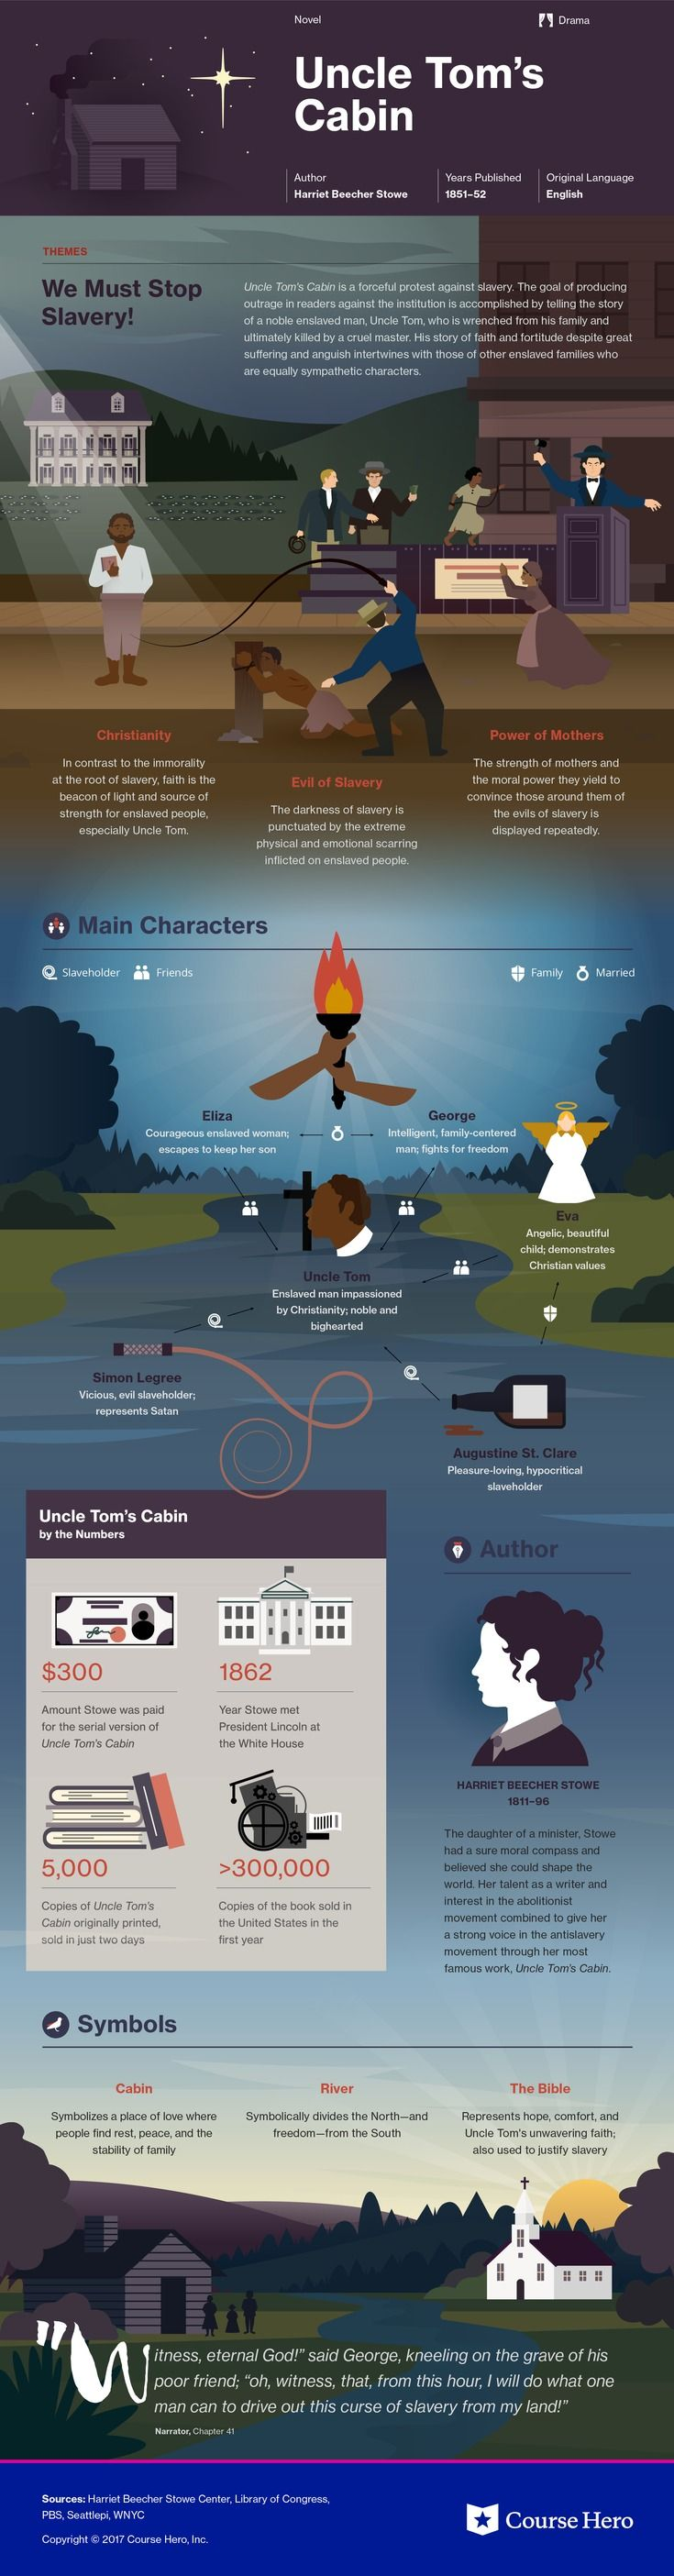 best images about literature infographics the study guide for harriet beecher stowe s uncle tom s cabin including chapter summary character analysis and more learn all about uncle tom s cabin